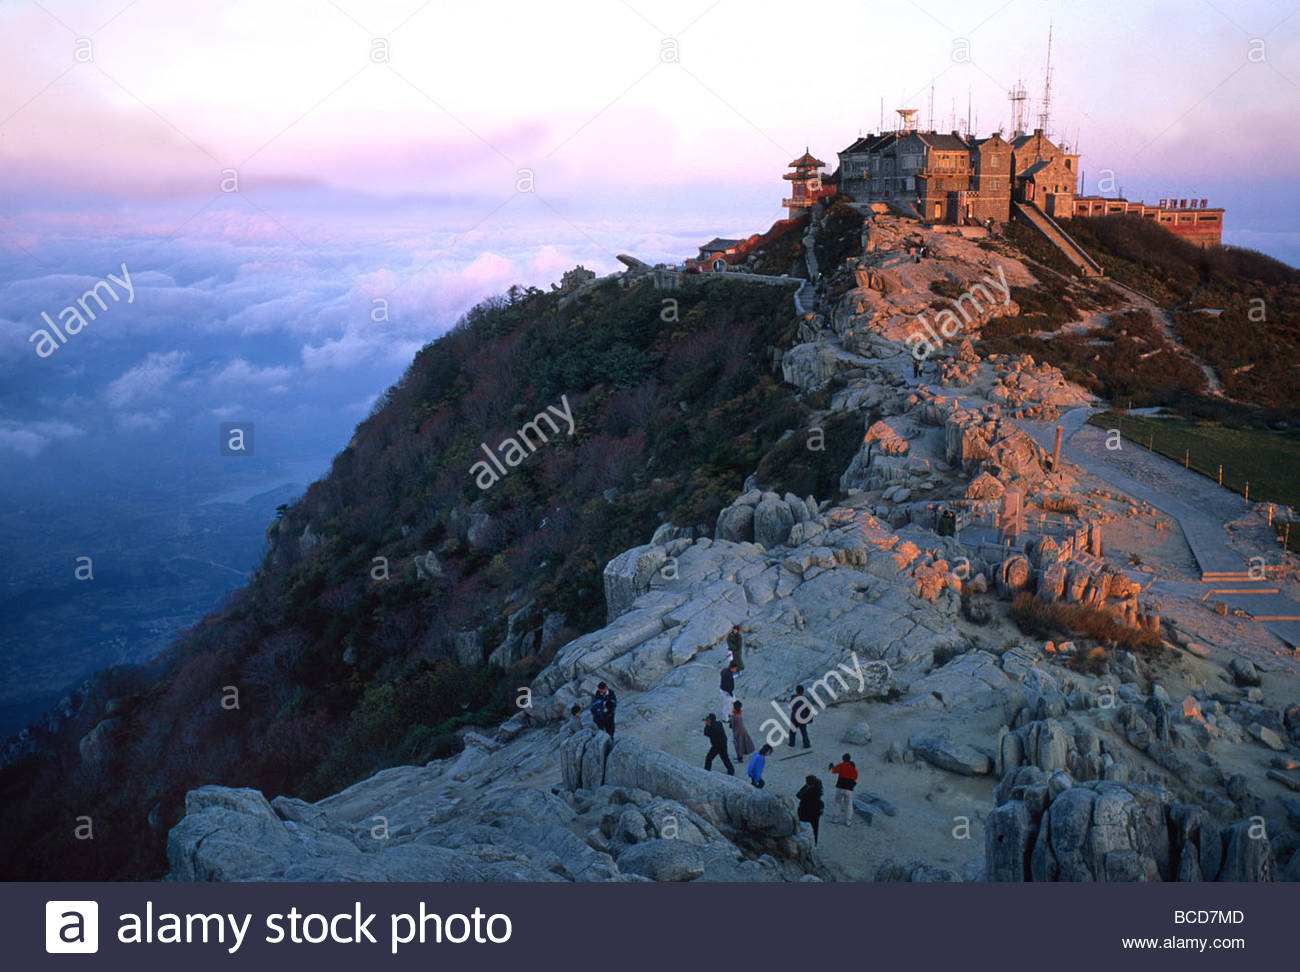 Visitors reach the peak of Mt. Tai during the Moon Festival. - Stock Image